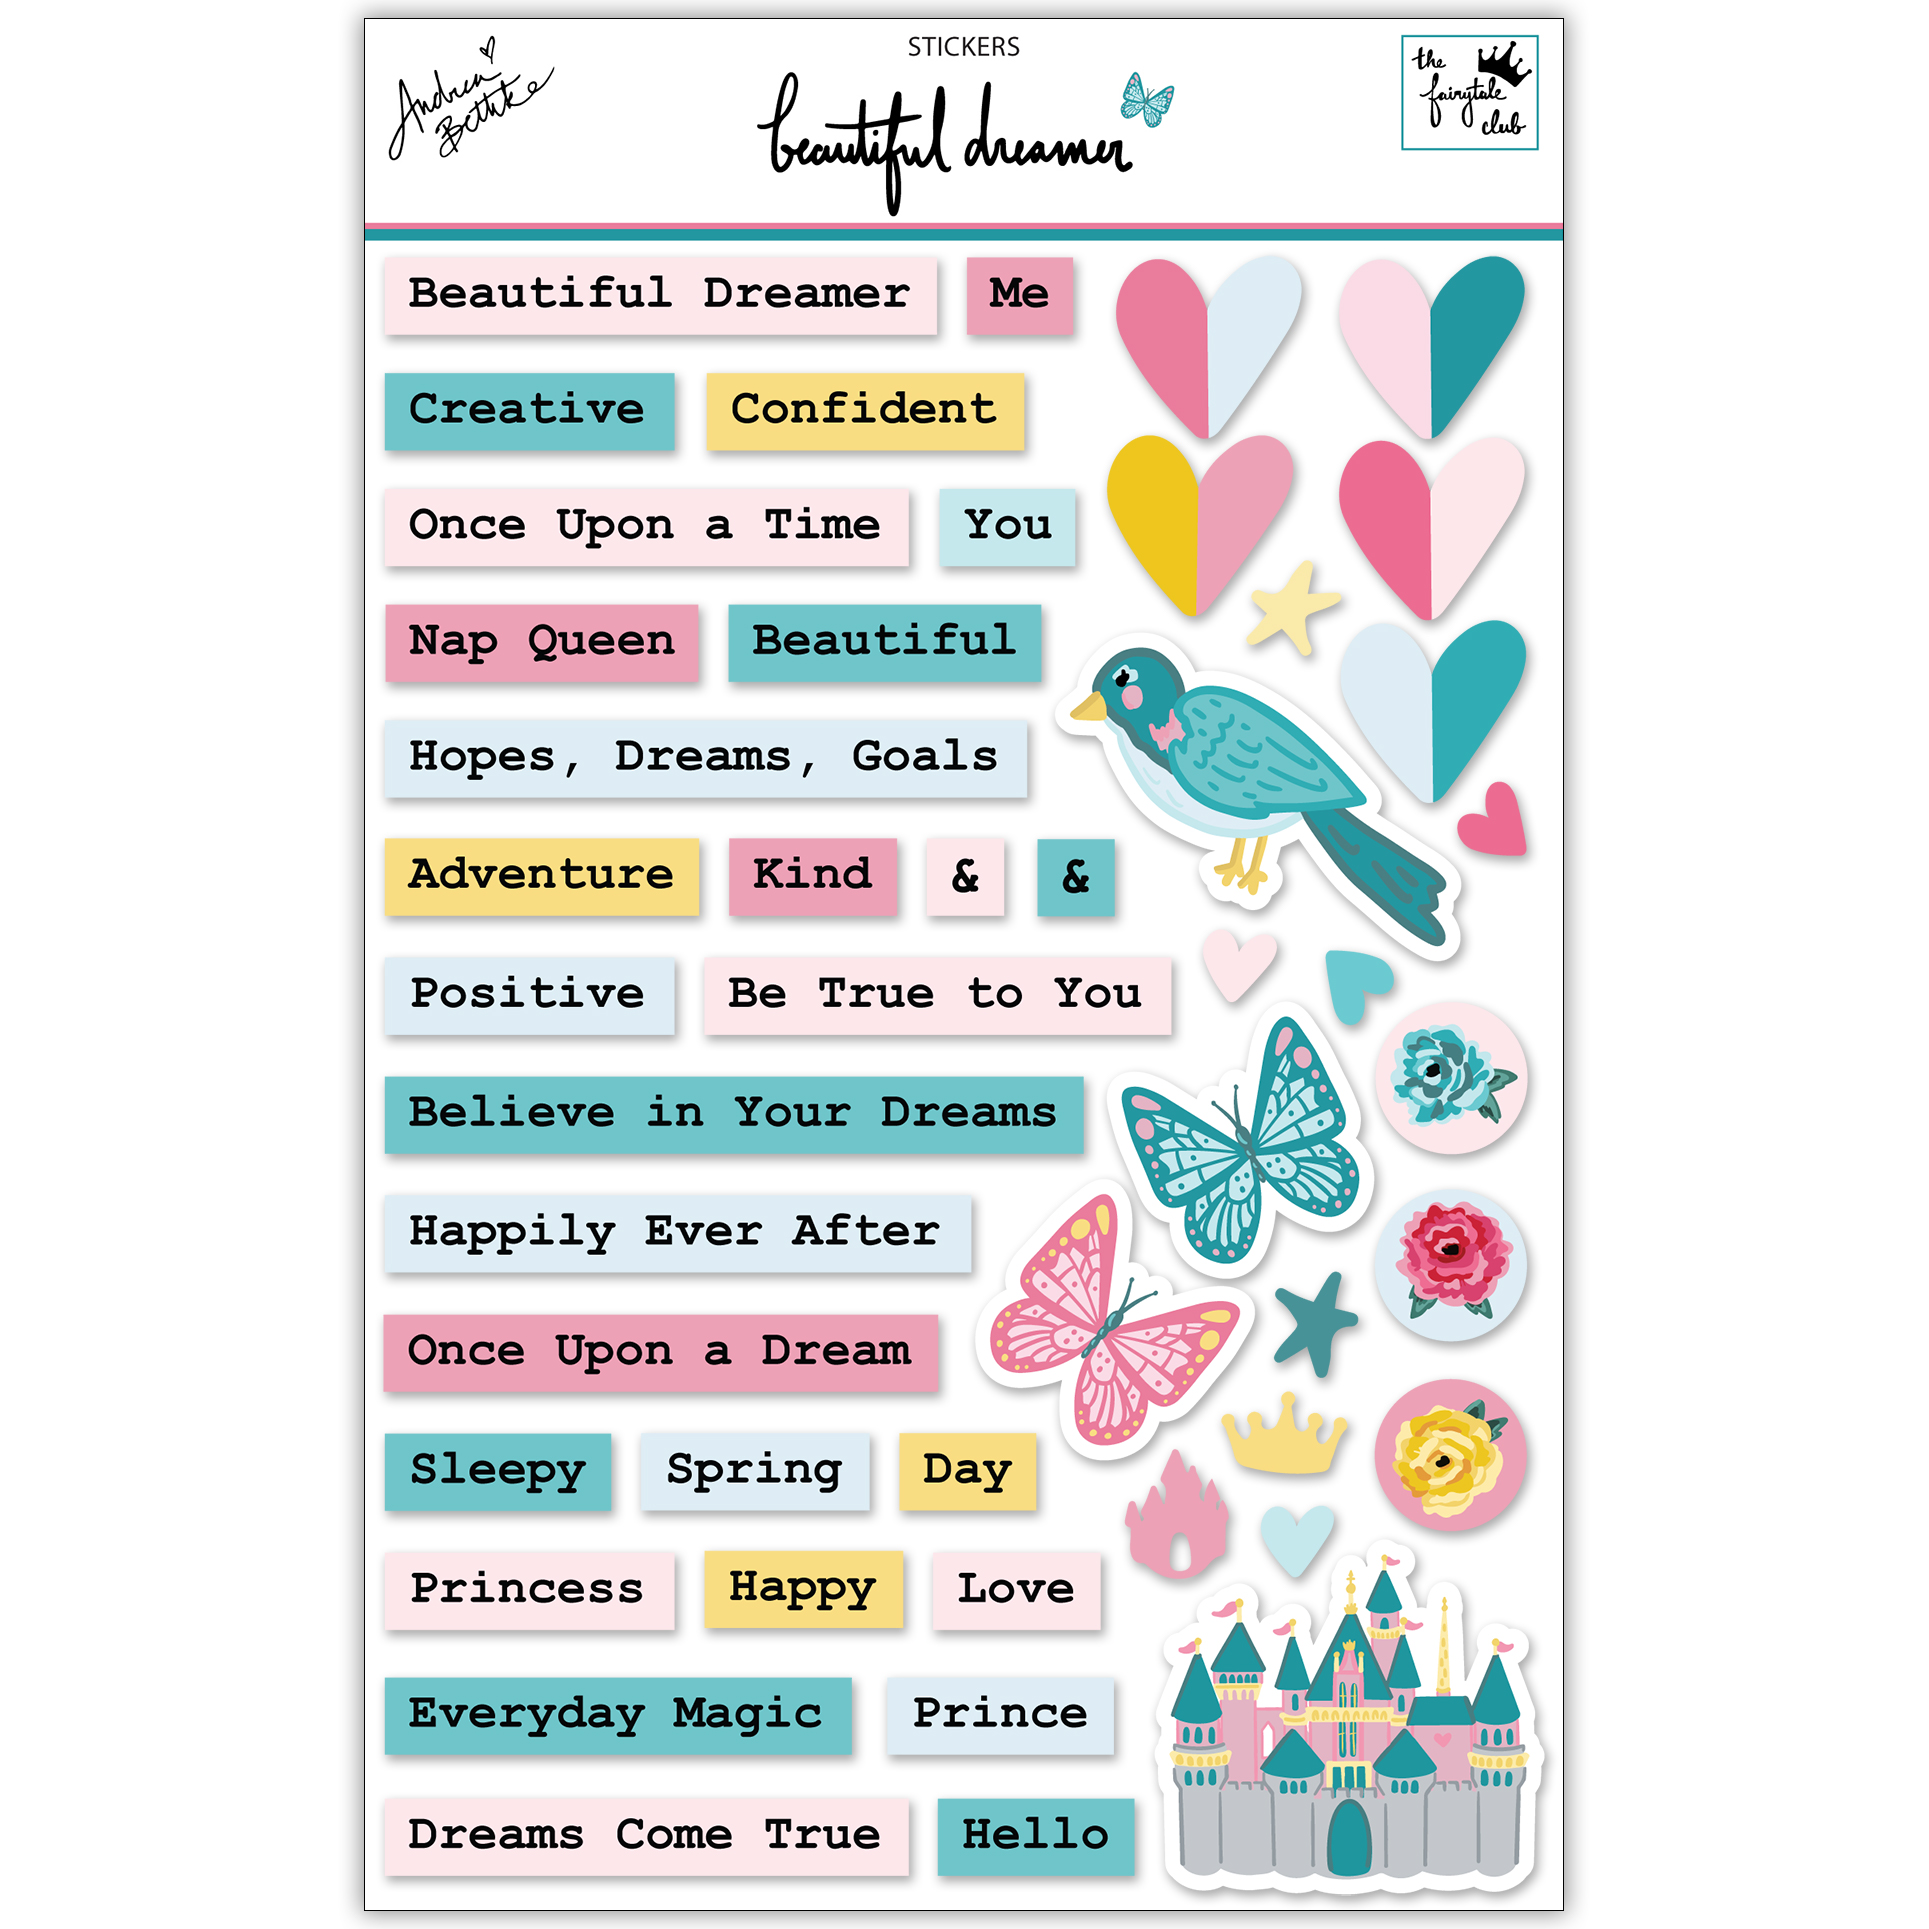 Beautiful Dreamer - Stickers packaging square.jpg